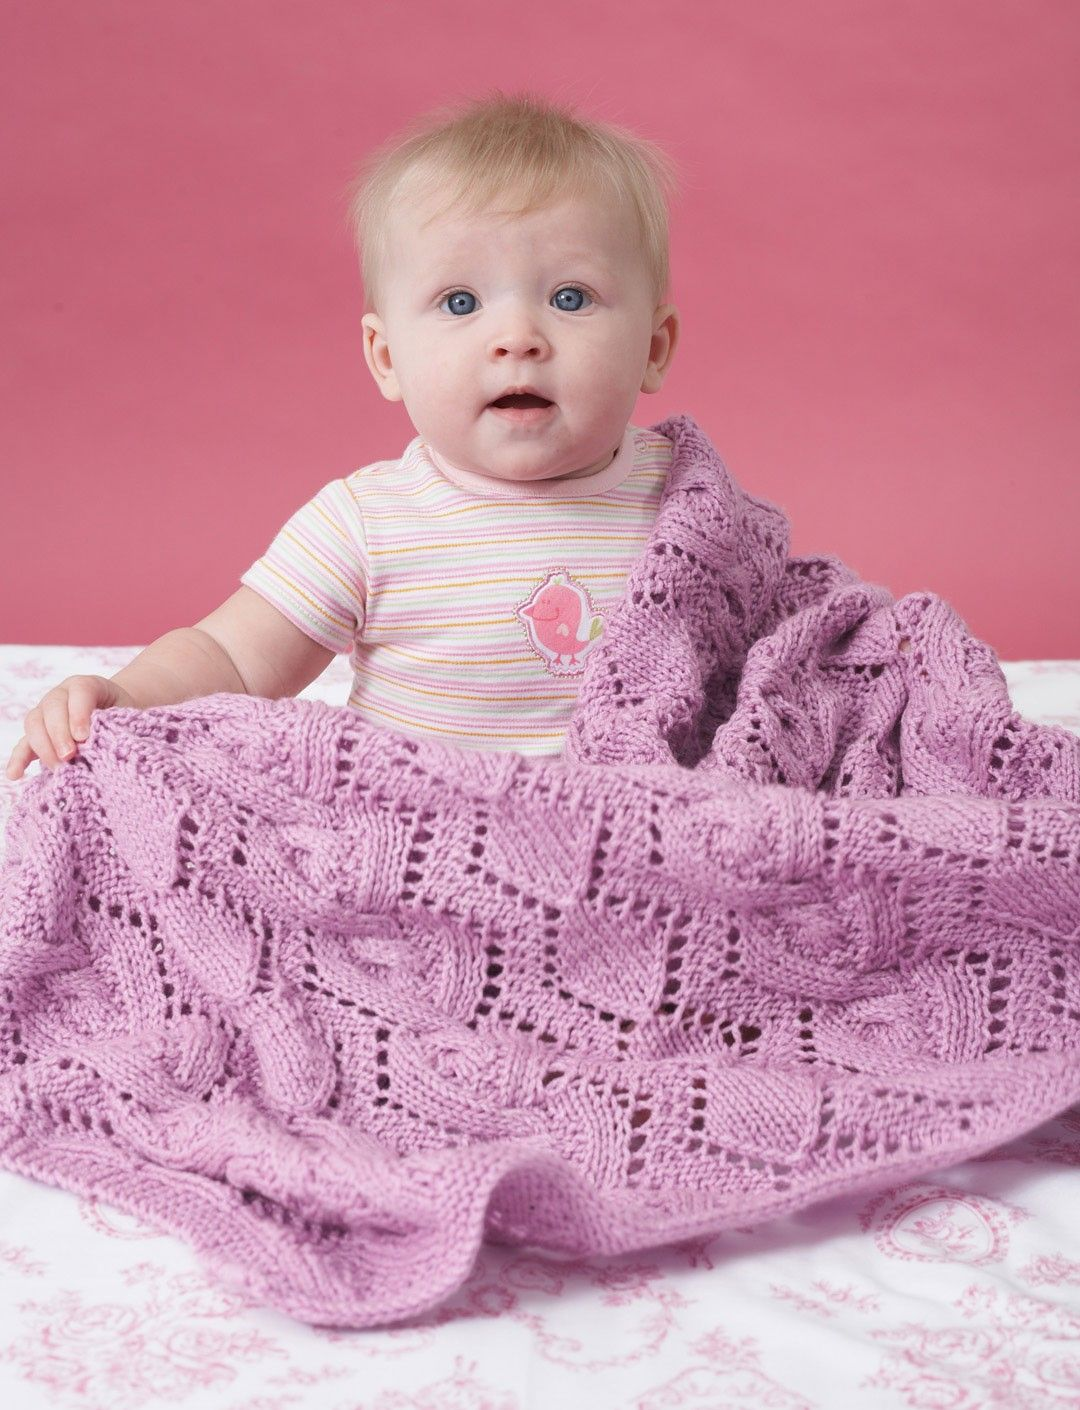 Yarnspirations.com - Bernat Cable and Lace Blanket - Patterns ...